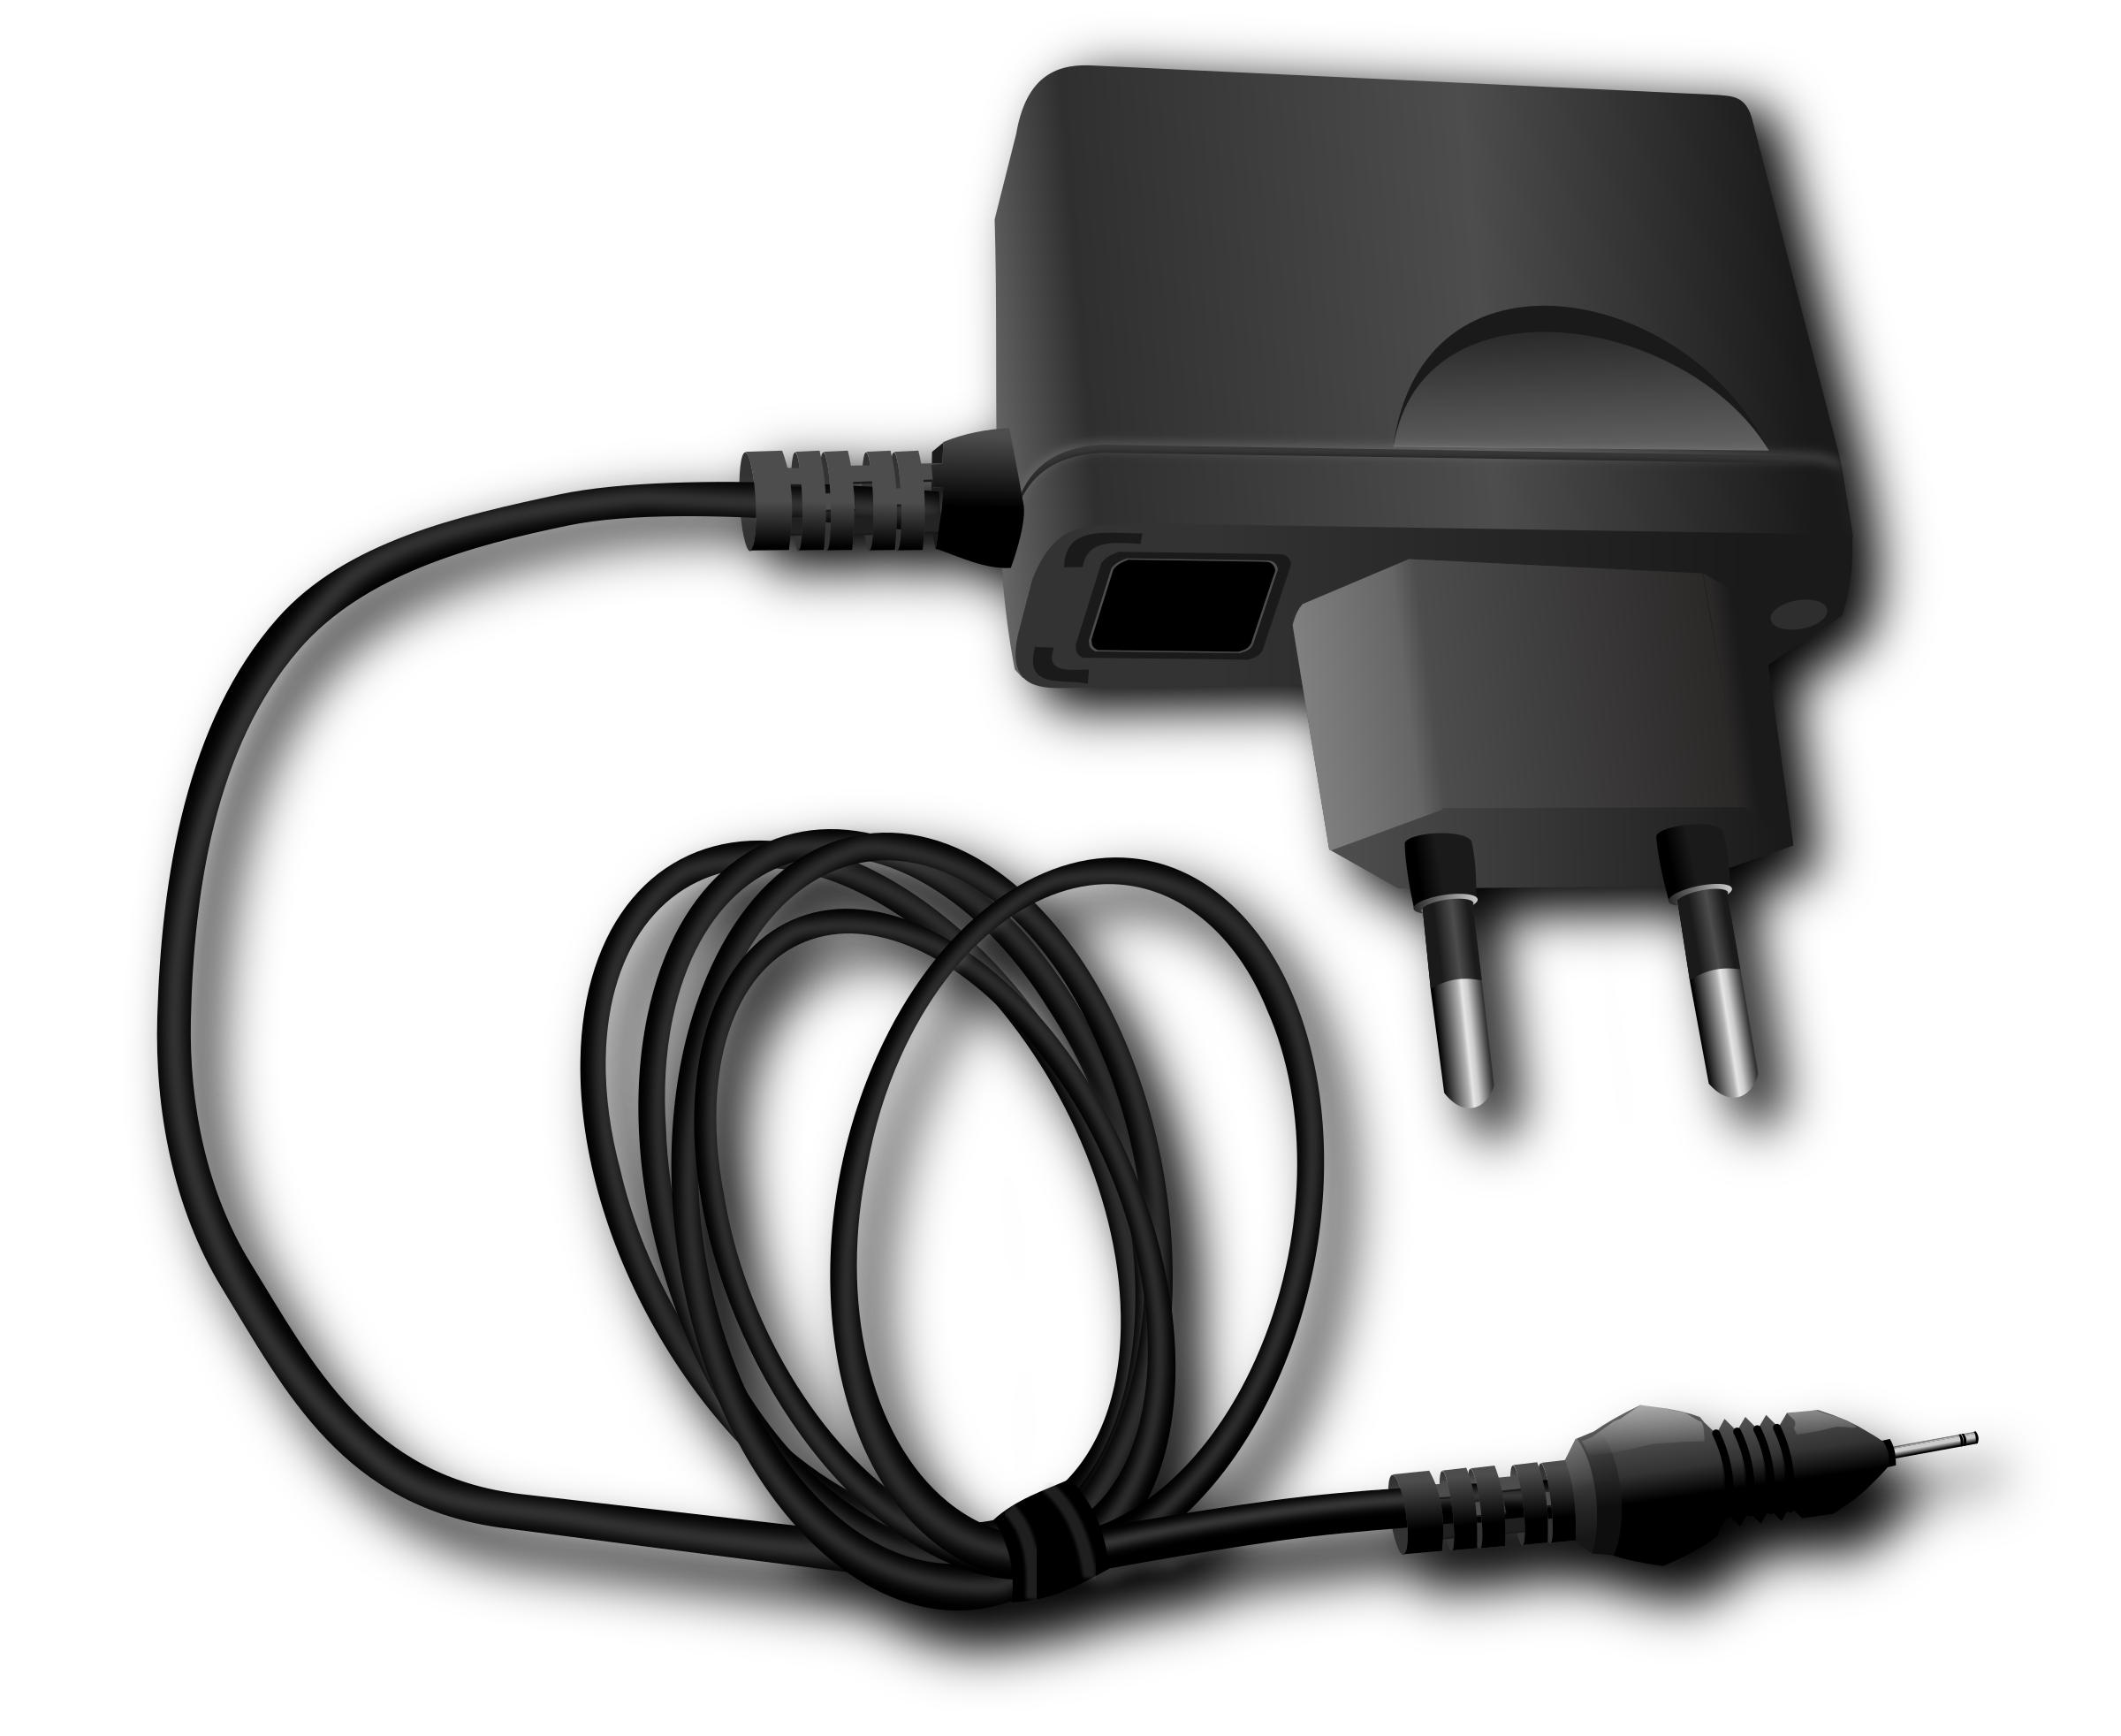 Electricity clipart computer charger. Telephone remixed big image